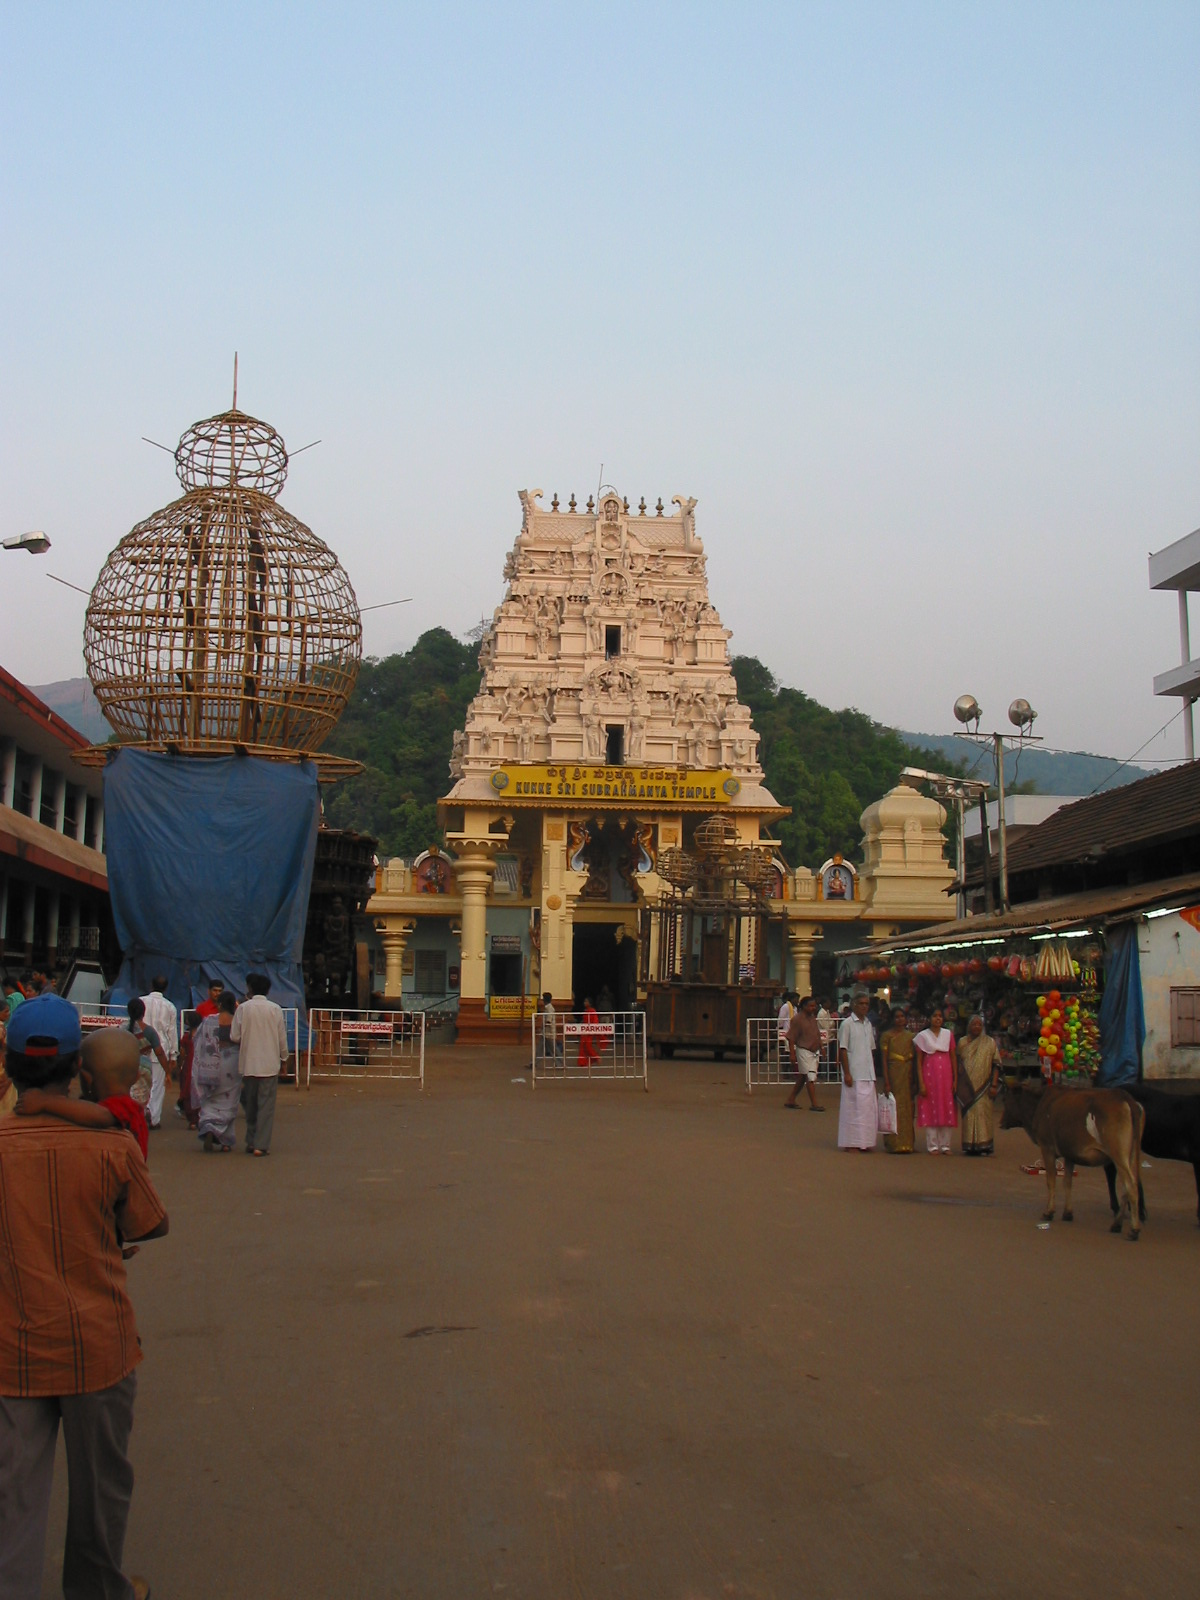 Albums Find Great Scrapbooking Deals Shopping at m Kukke subramanya swamy temple photos